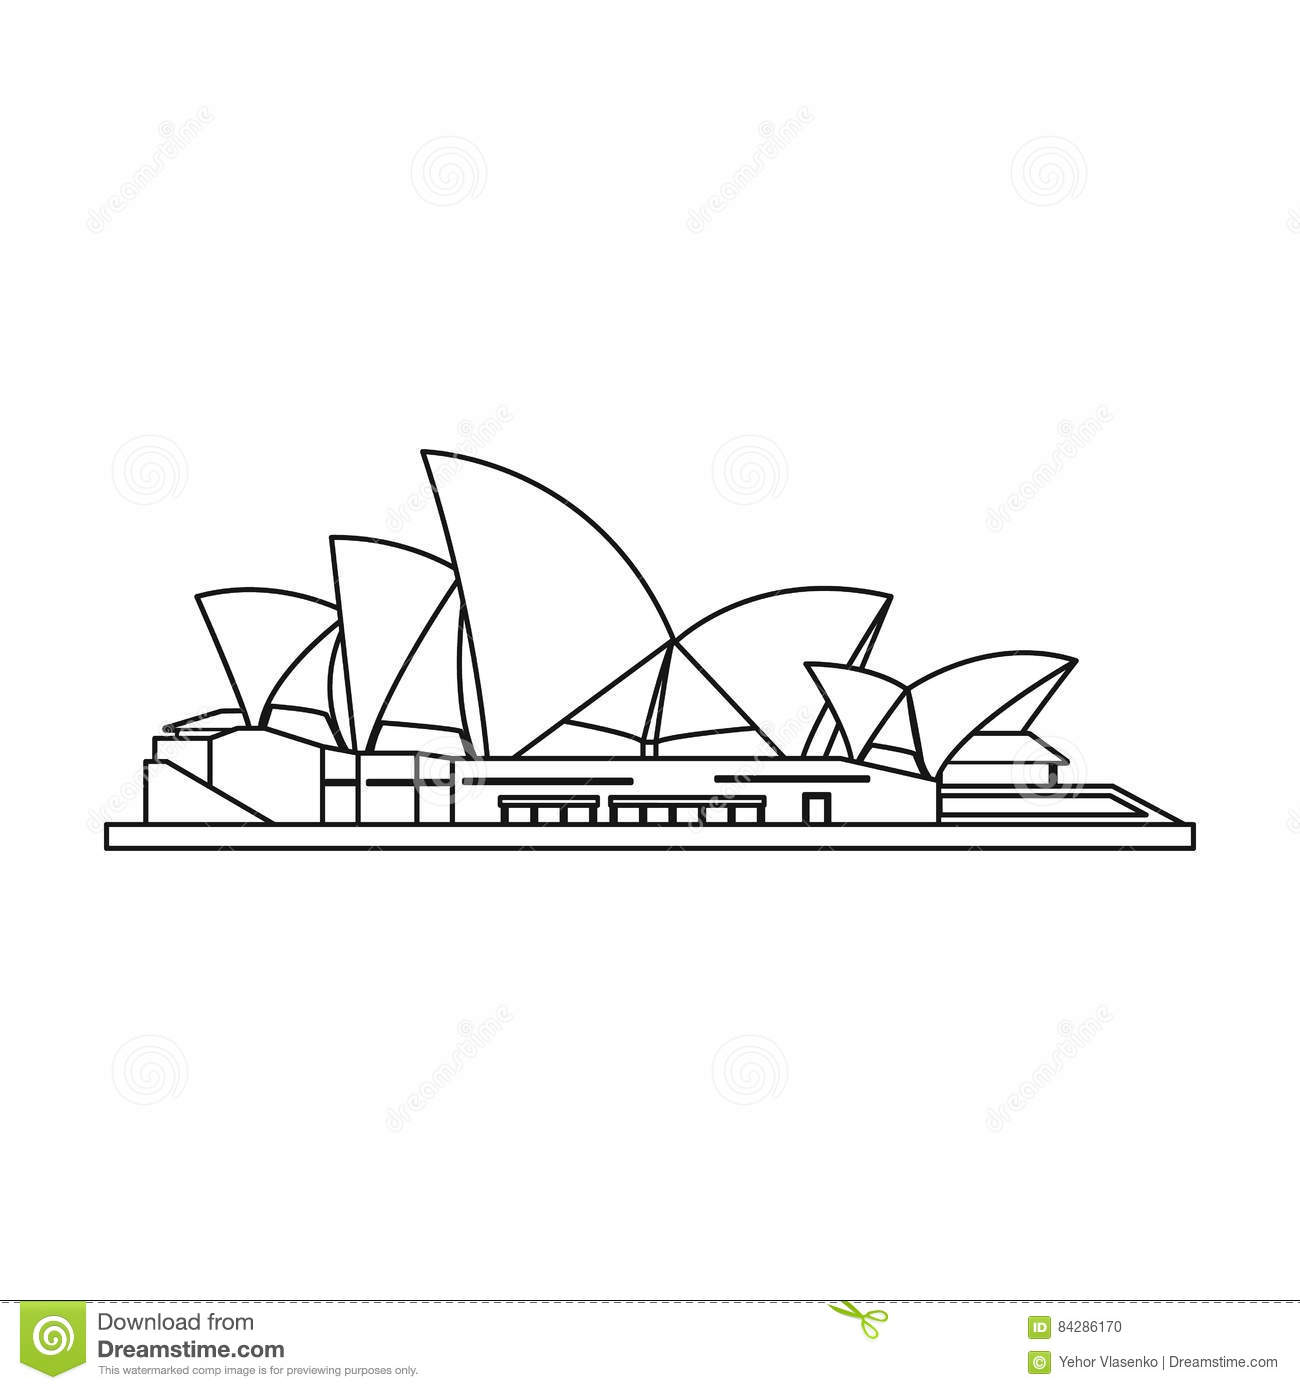 House outline picture - Countries Design House Icon Illustration Isolated Opera Outline